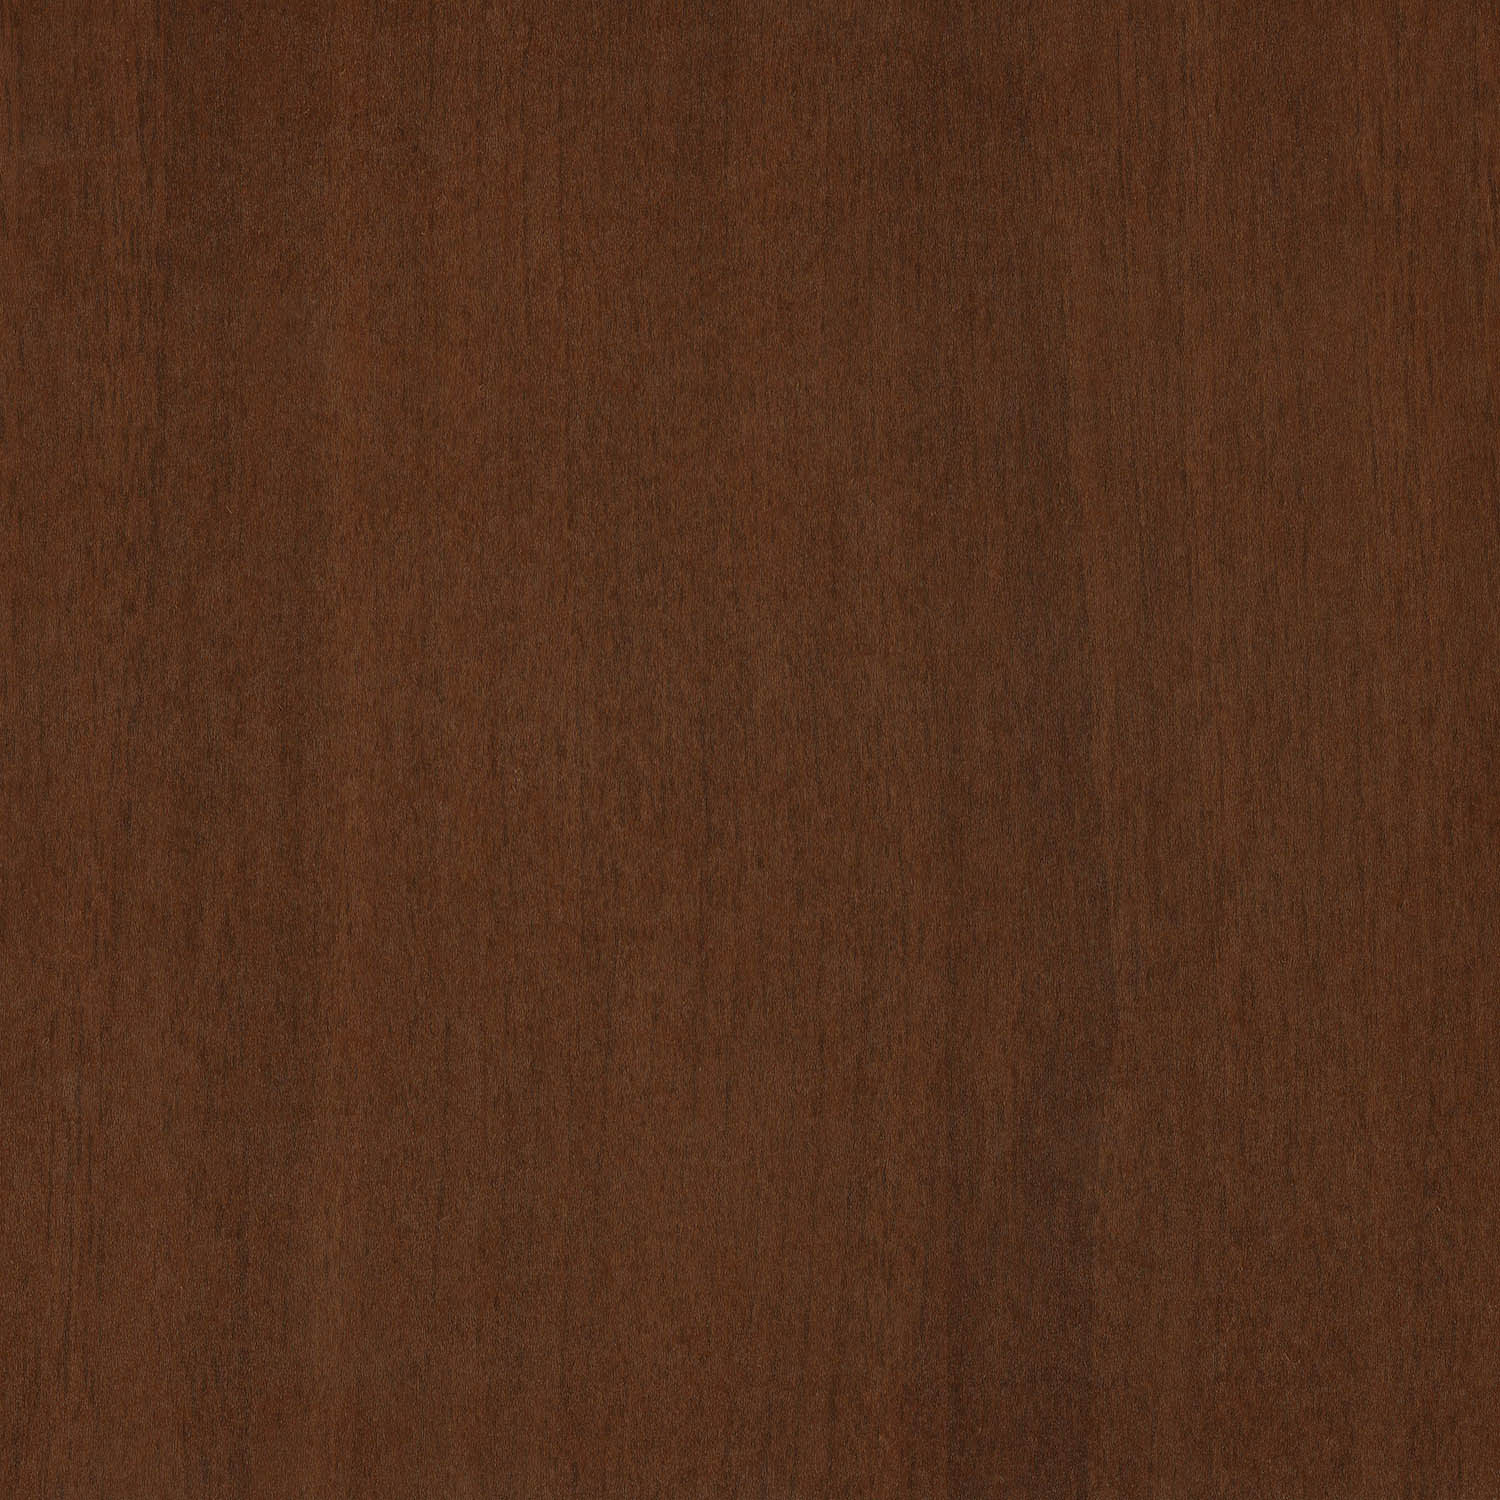 Painted Fiberboard 4073 Chestnut